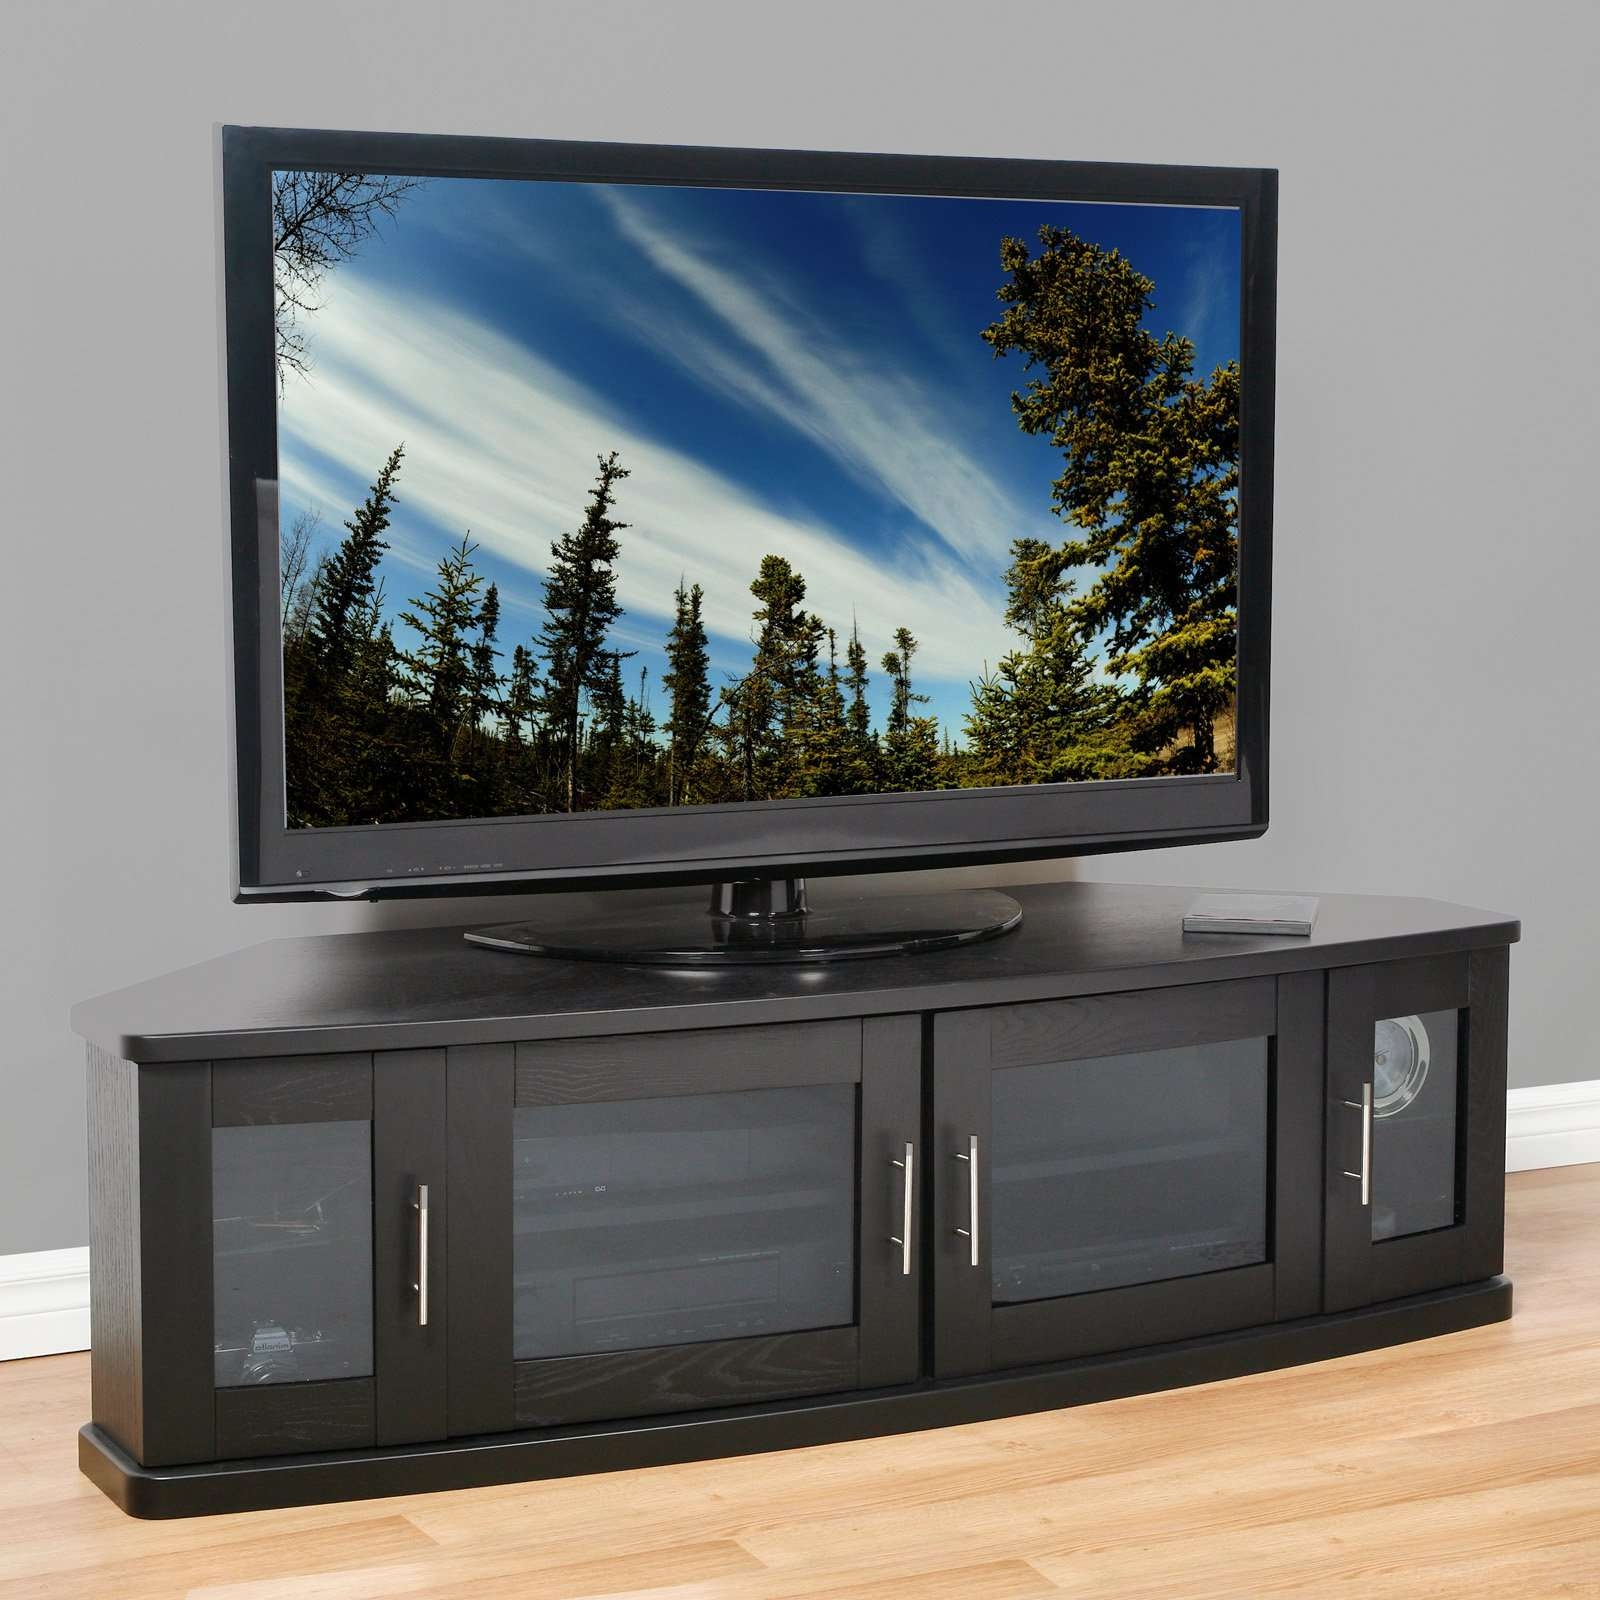 Modern Black Wooden Tv Stand With Frosted Glass Doors Of Dazzling Inside Wooden Tv Stands With Glass Doors (View 9 of 15)